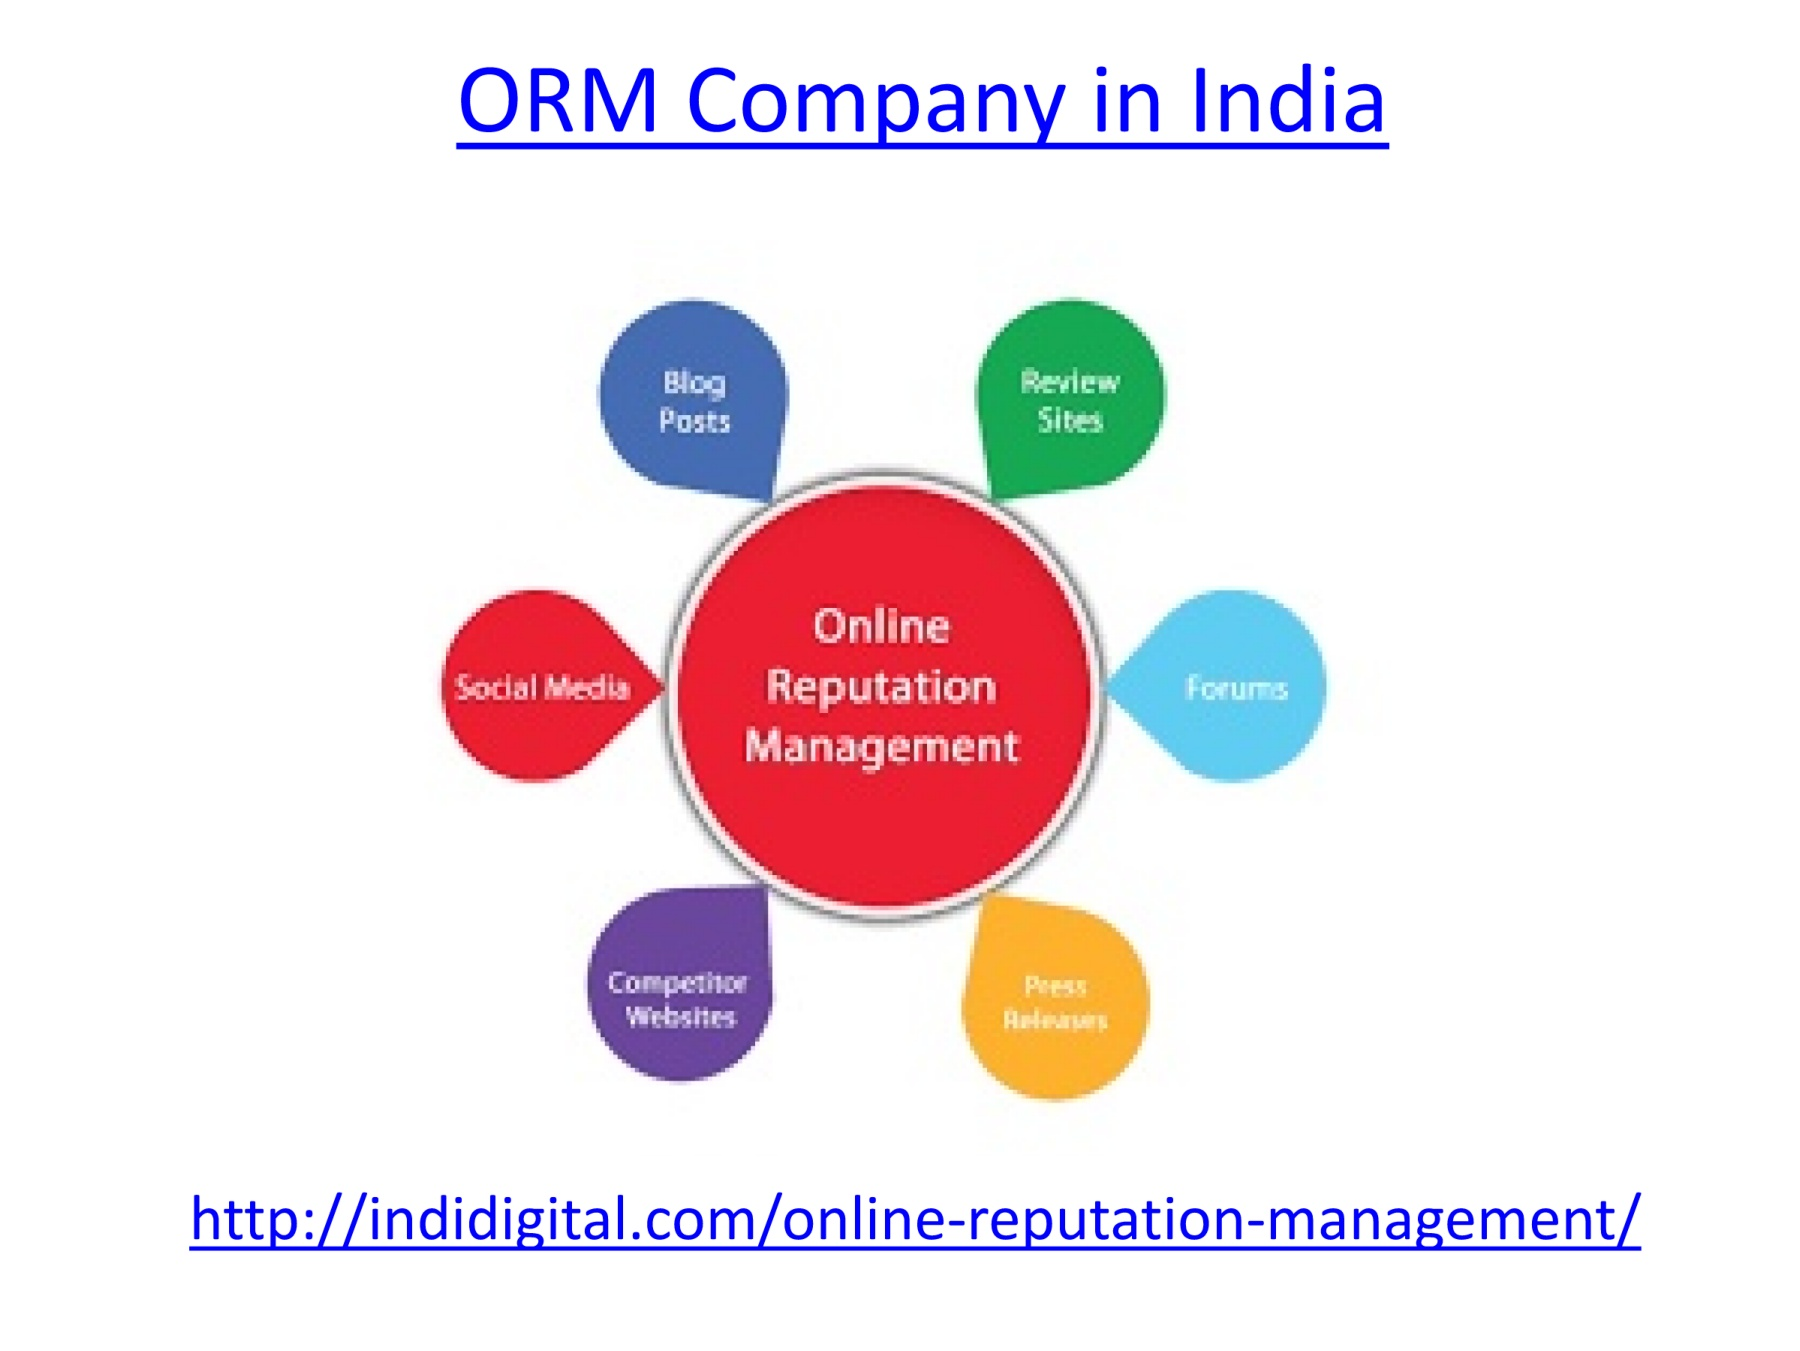 ORM Company in India